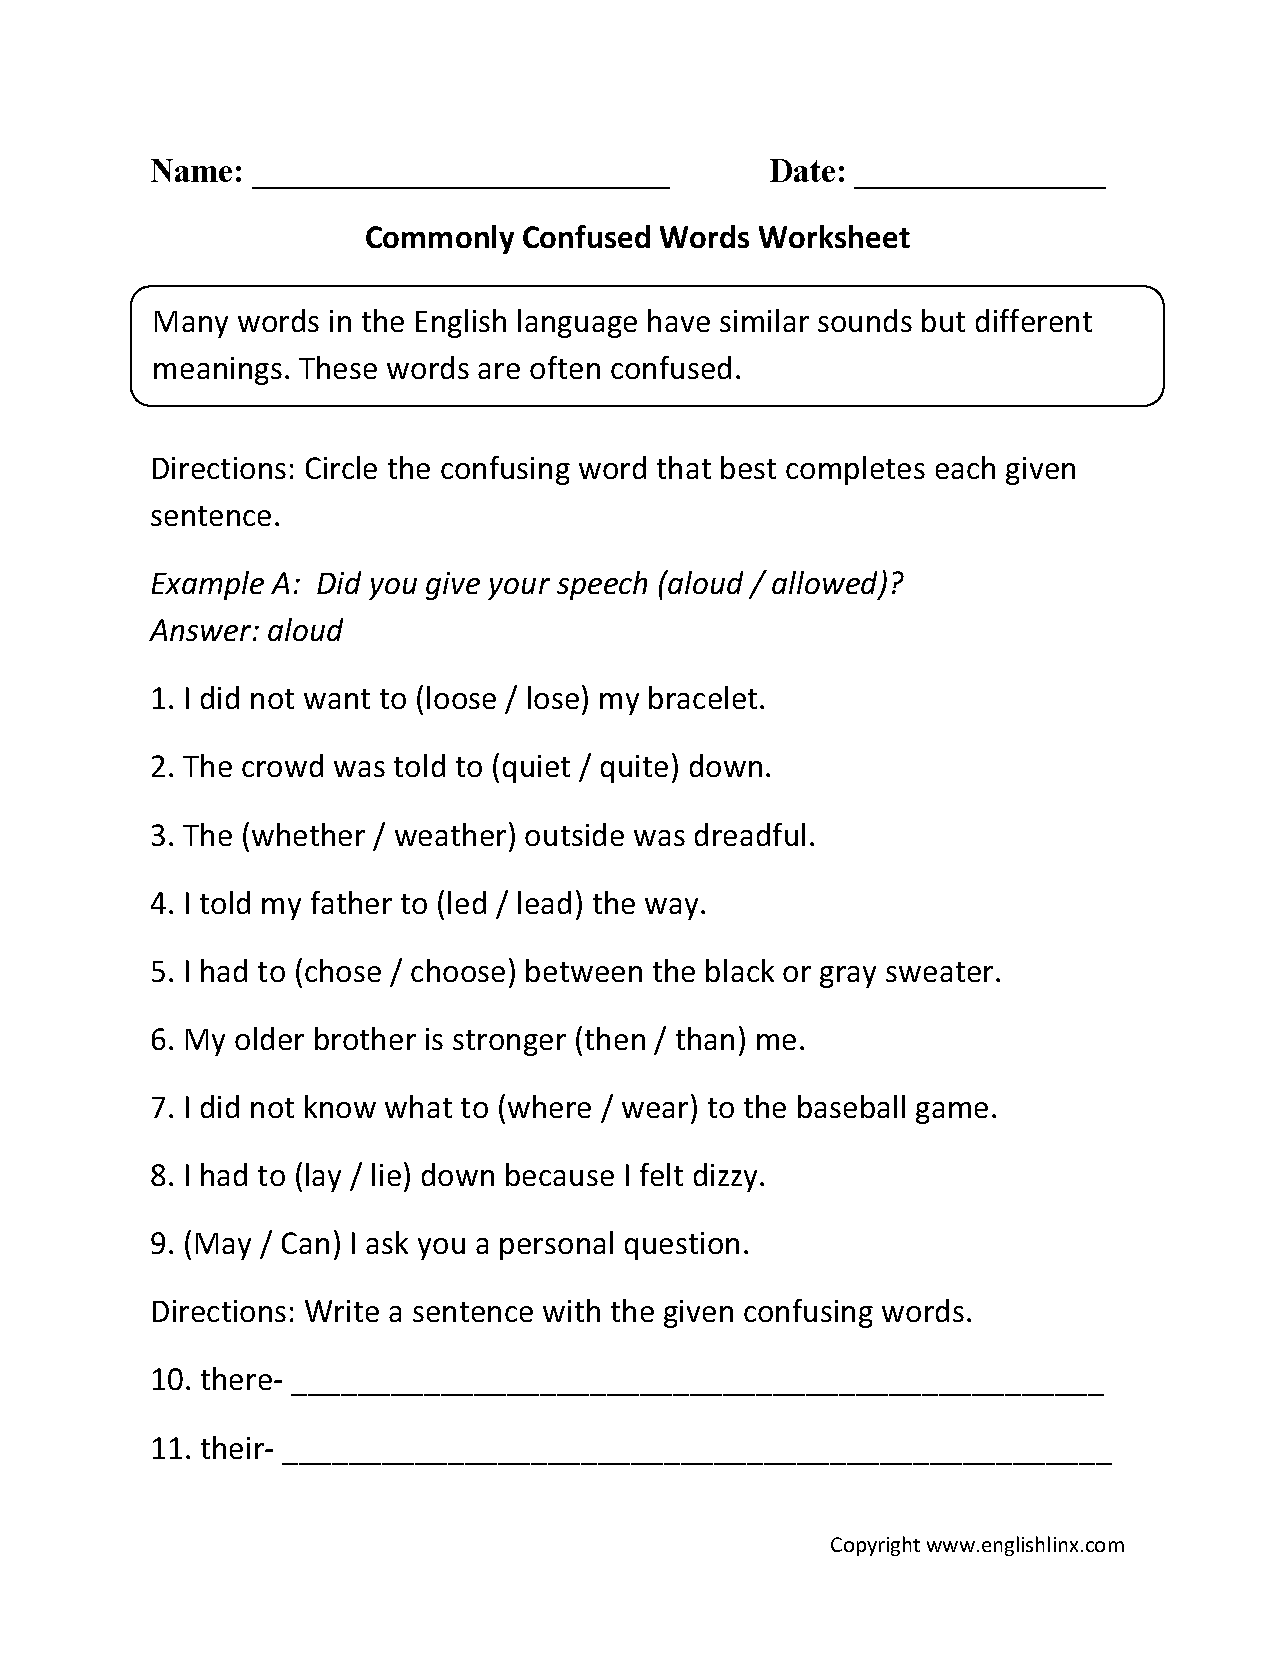 worksheet Language Arts Worksheets Middle School commonly confused words worksheets language arts middle there are many in the english that have similar sounds or simila